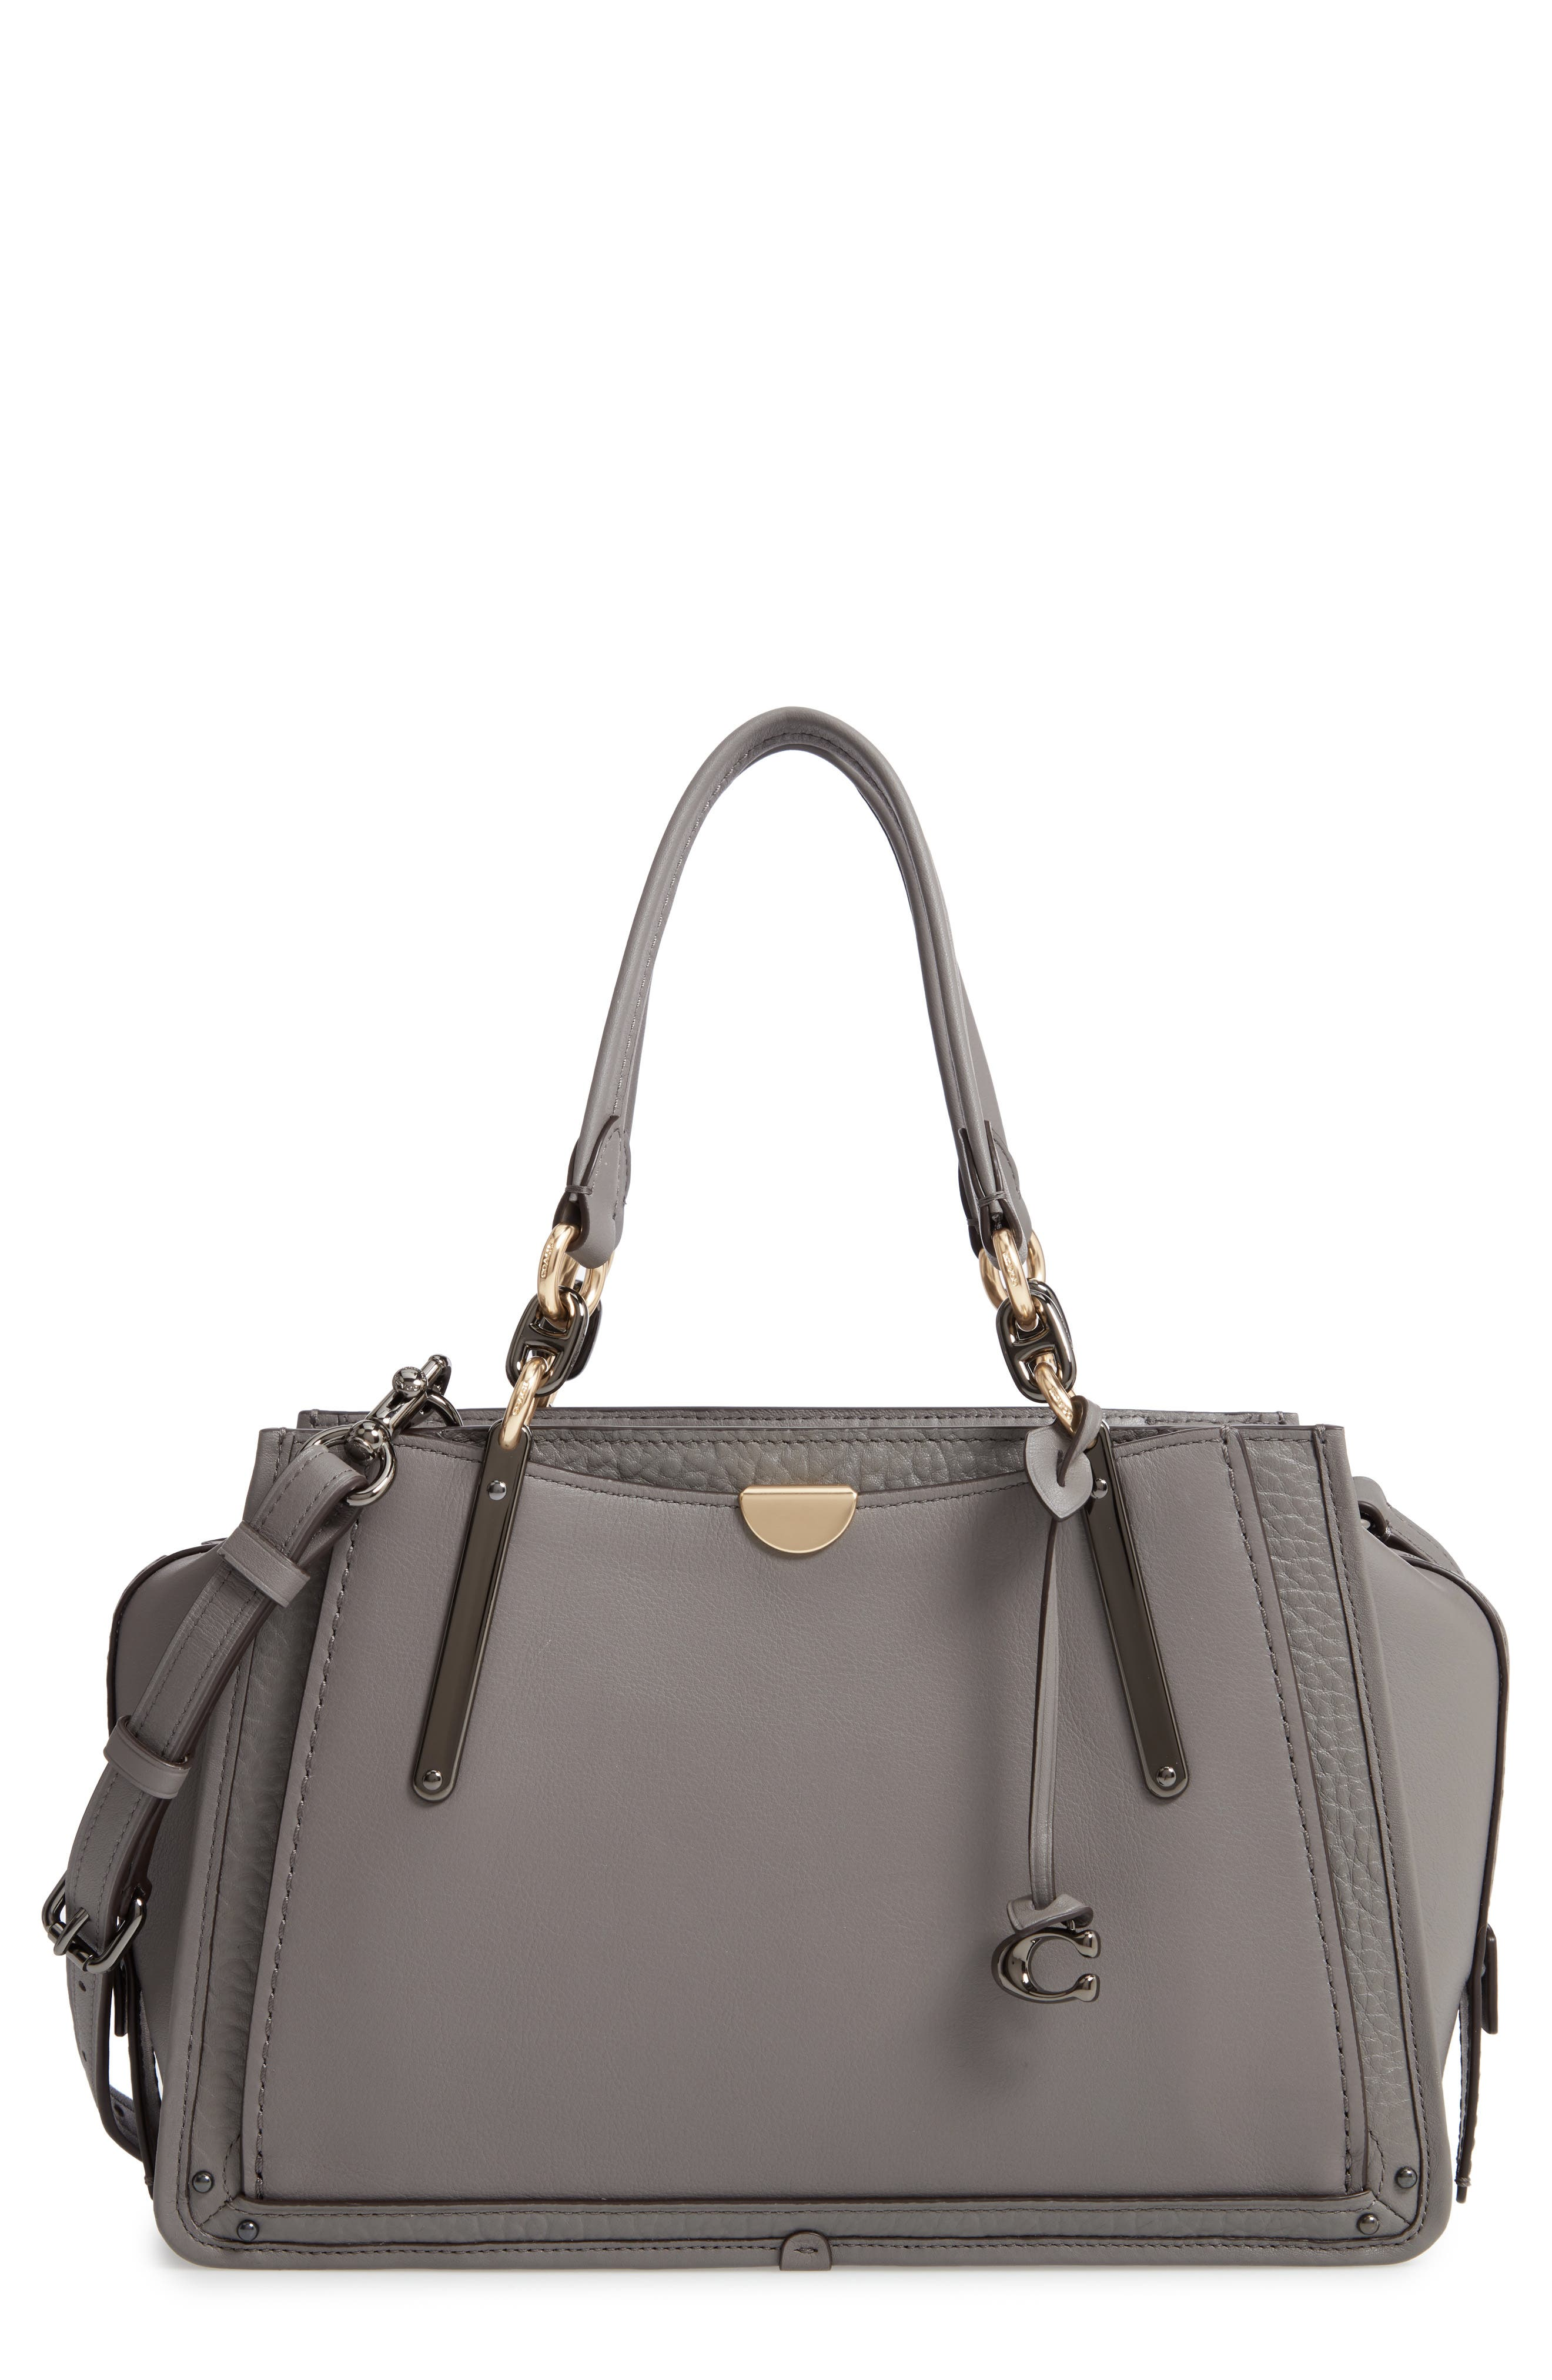 COACH Dreamer Mixed Leather Bag, Main, color, HEATHER GREY